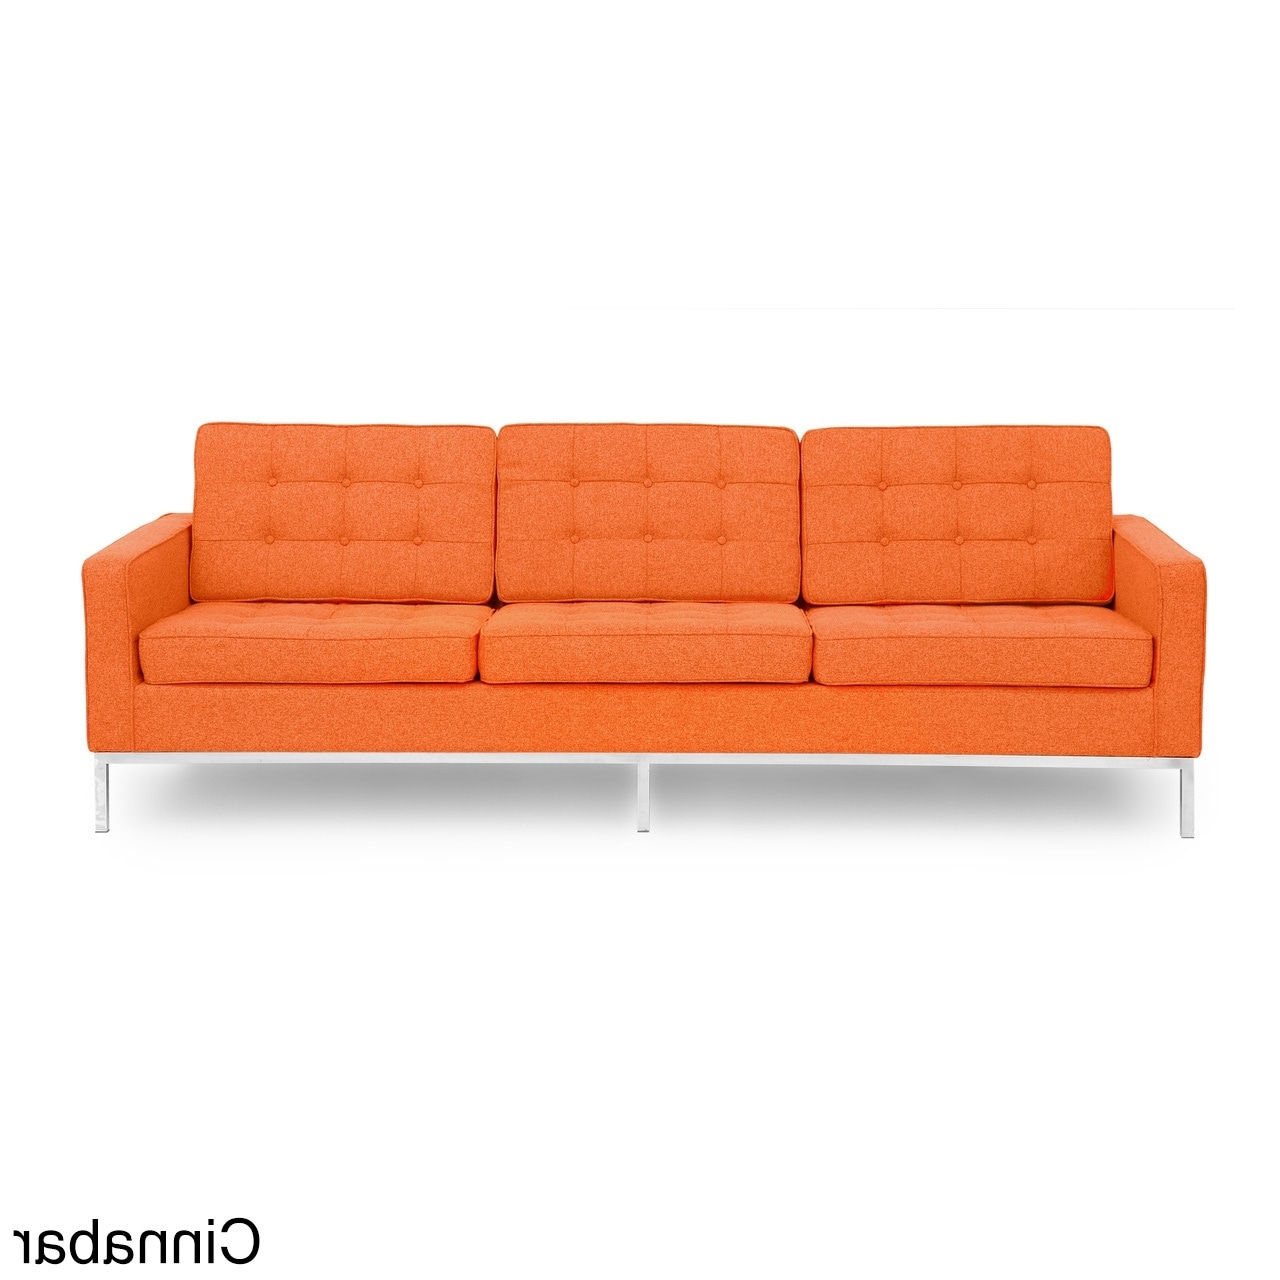 Most Up To Date Kardiel Florence Knoll Style Sofa 3 Seat, Premium Fabric With Regard To Florence Knoll Fabric Sofas (View 11 of 20)